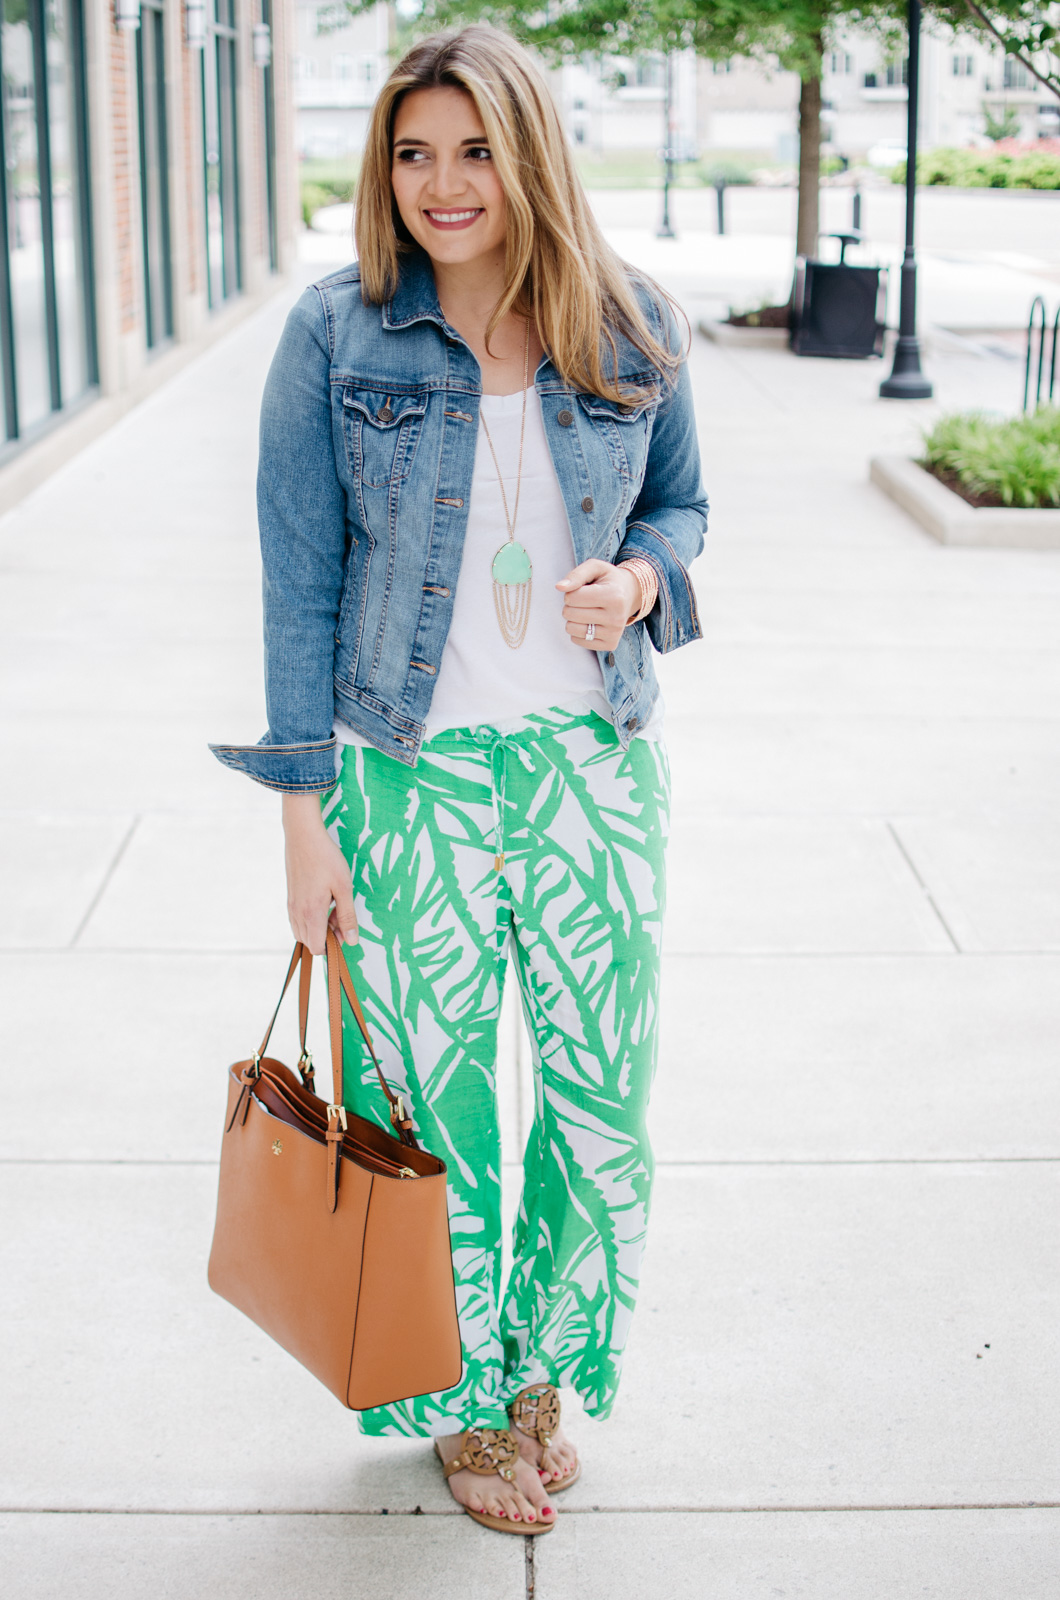 palazzo pants - printed pants outfit | For more Spring and Summer outfits, head to bylaurenm.com!